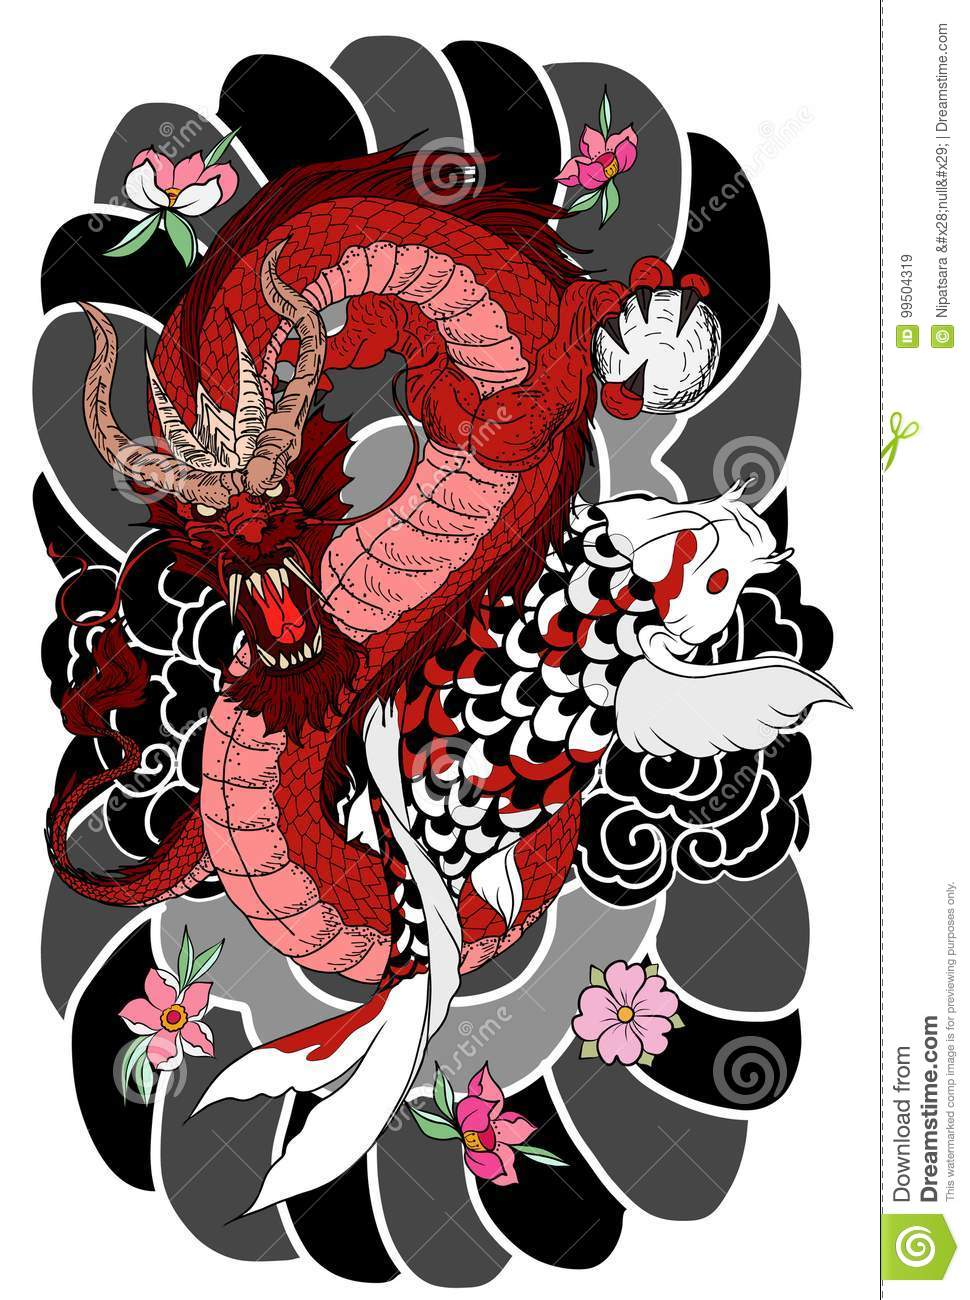 Hand Drawn Dragon And Koi Fish With Flower Tattoo For Arm, Japanese ...